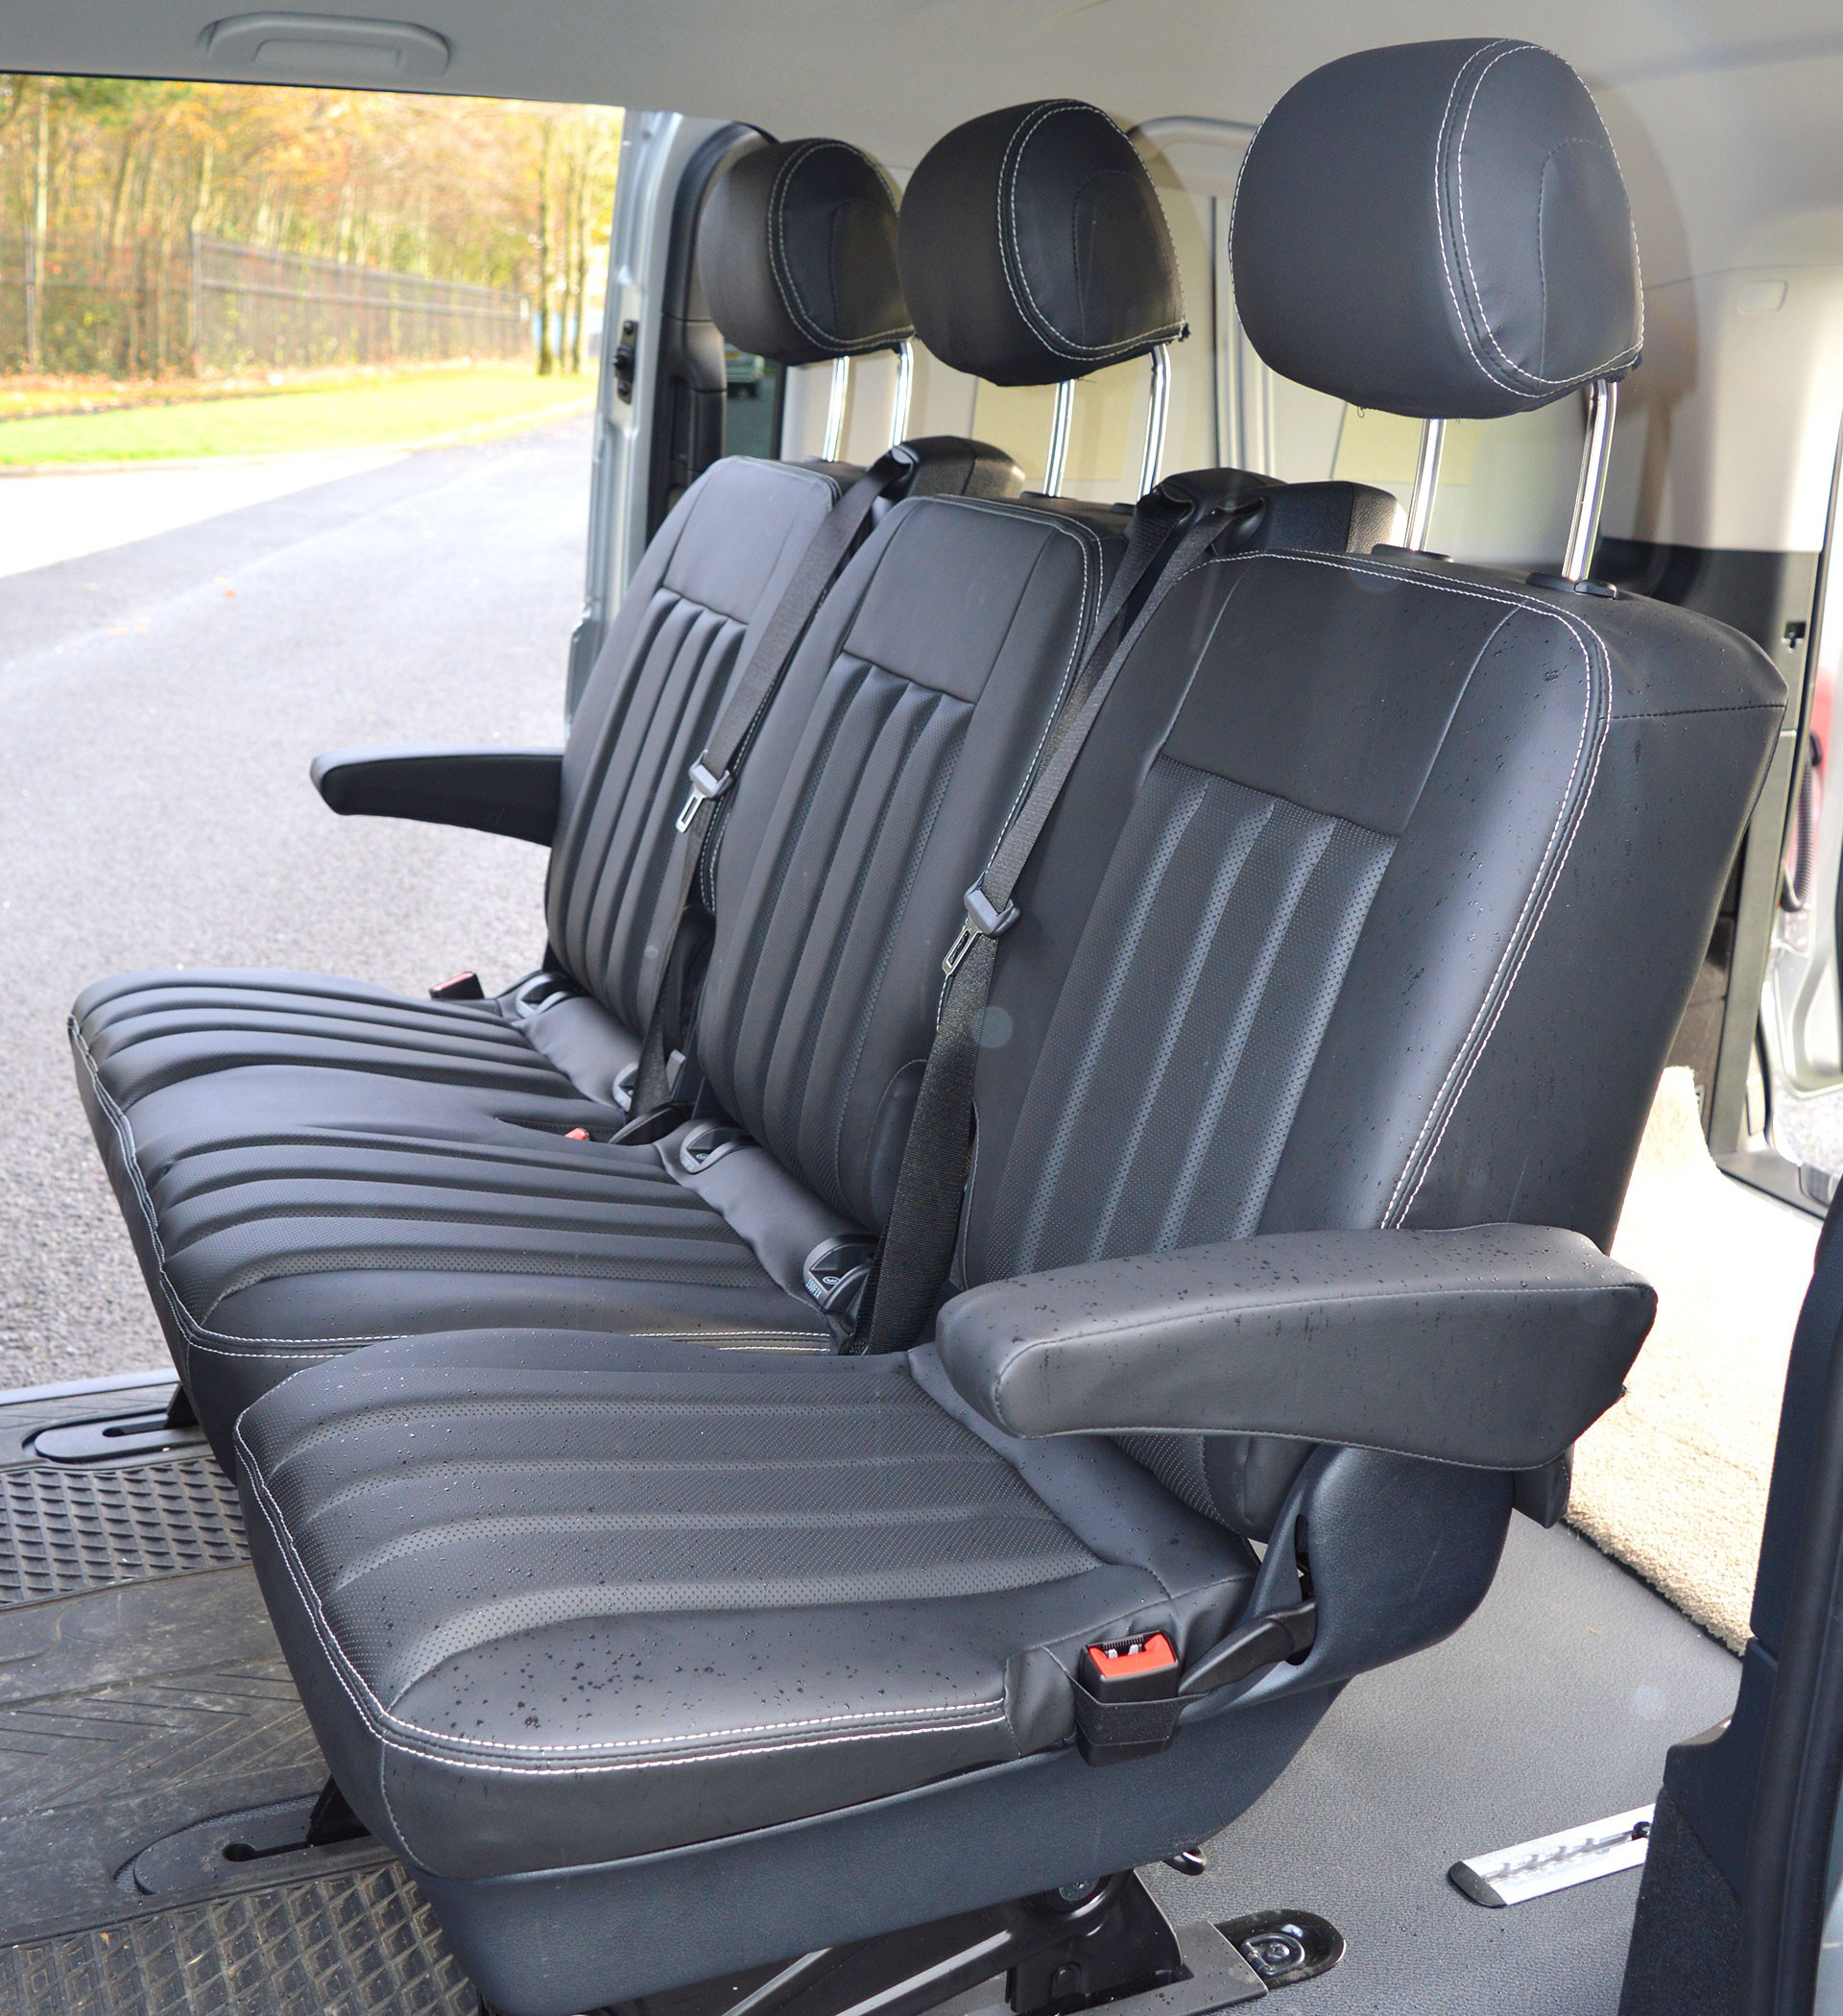 Best Car Seat Covers >> Mercedes Benz Vito W447 Tailored Van Seat Covers - 5 Seater